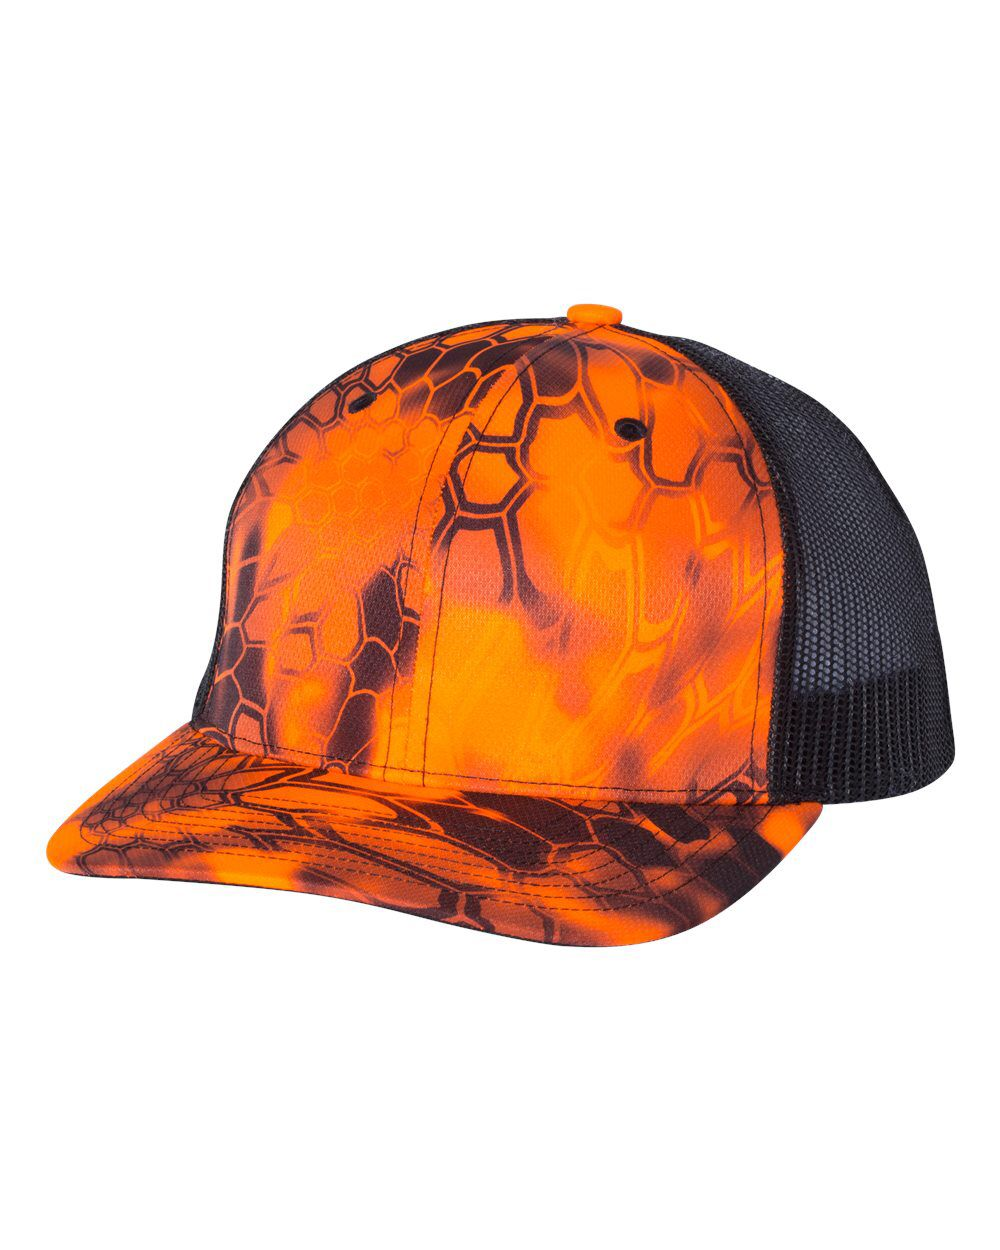 a6977cc37b4 Our high quality hats  caps are great for both outdoor and every day wear  with